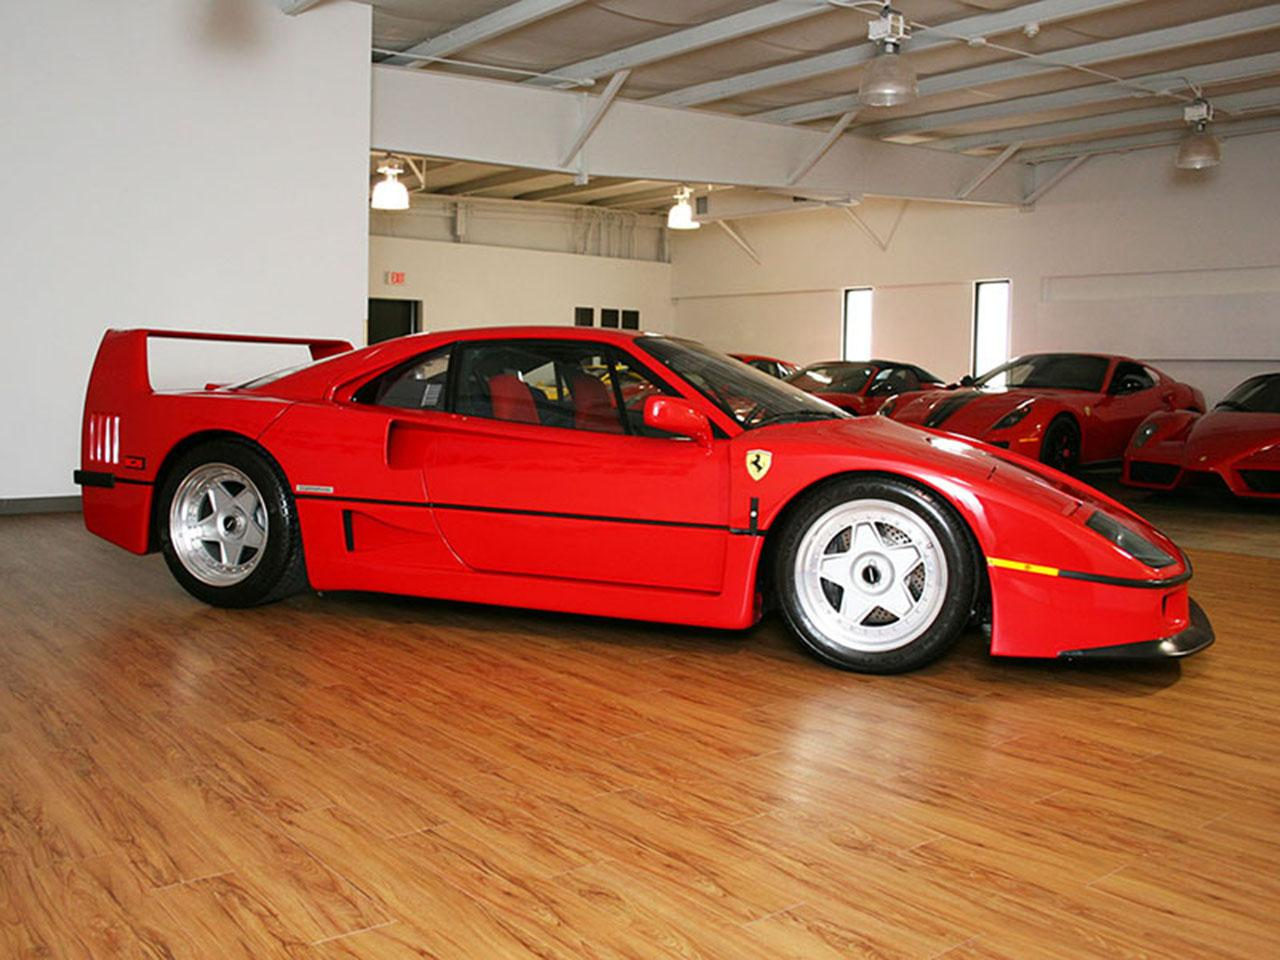 ferrari f40 for sale salno dermon. Black Bedroom Furniture Sets. Home Design Ideas